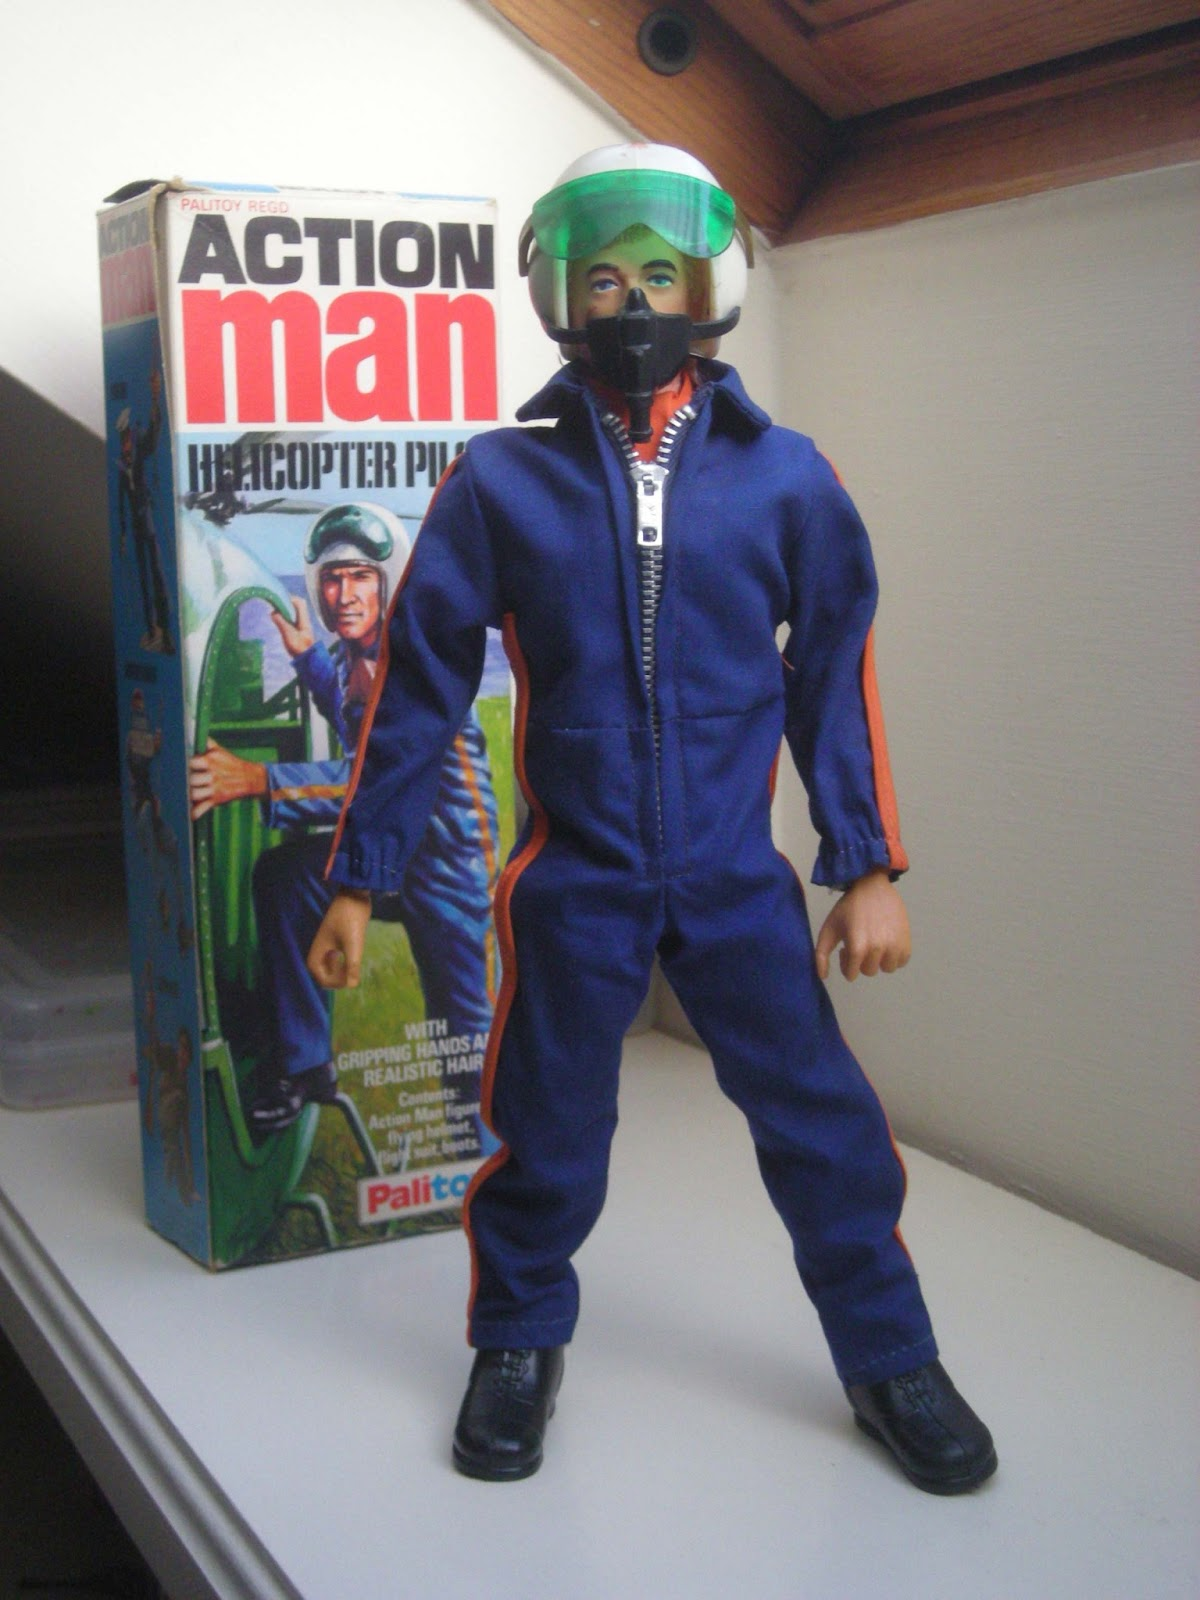 Vintage Palitoy Action Man 1973-84: Boxed Figures & Outfits